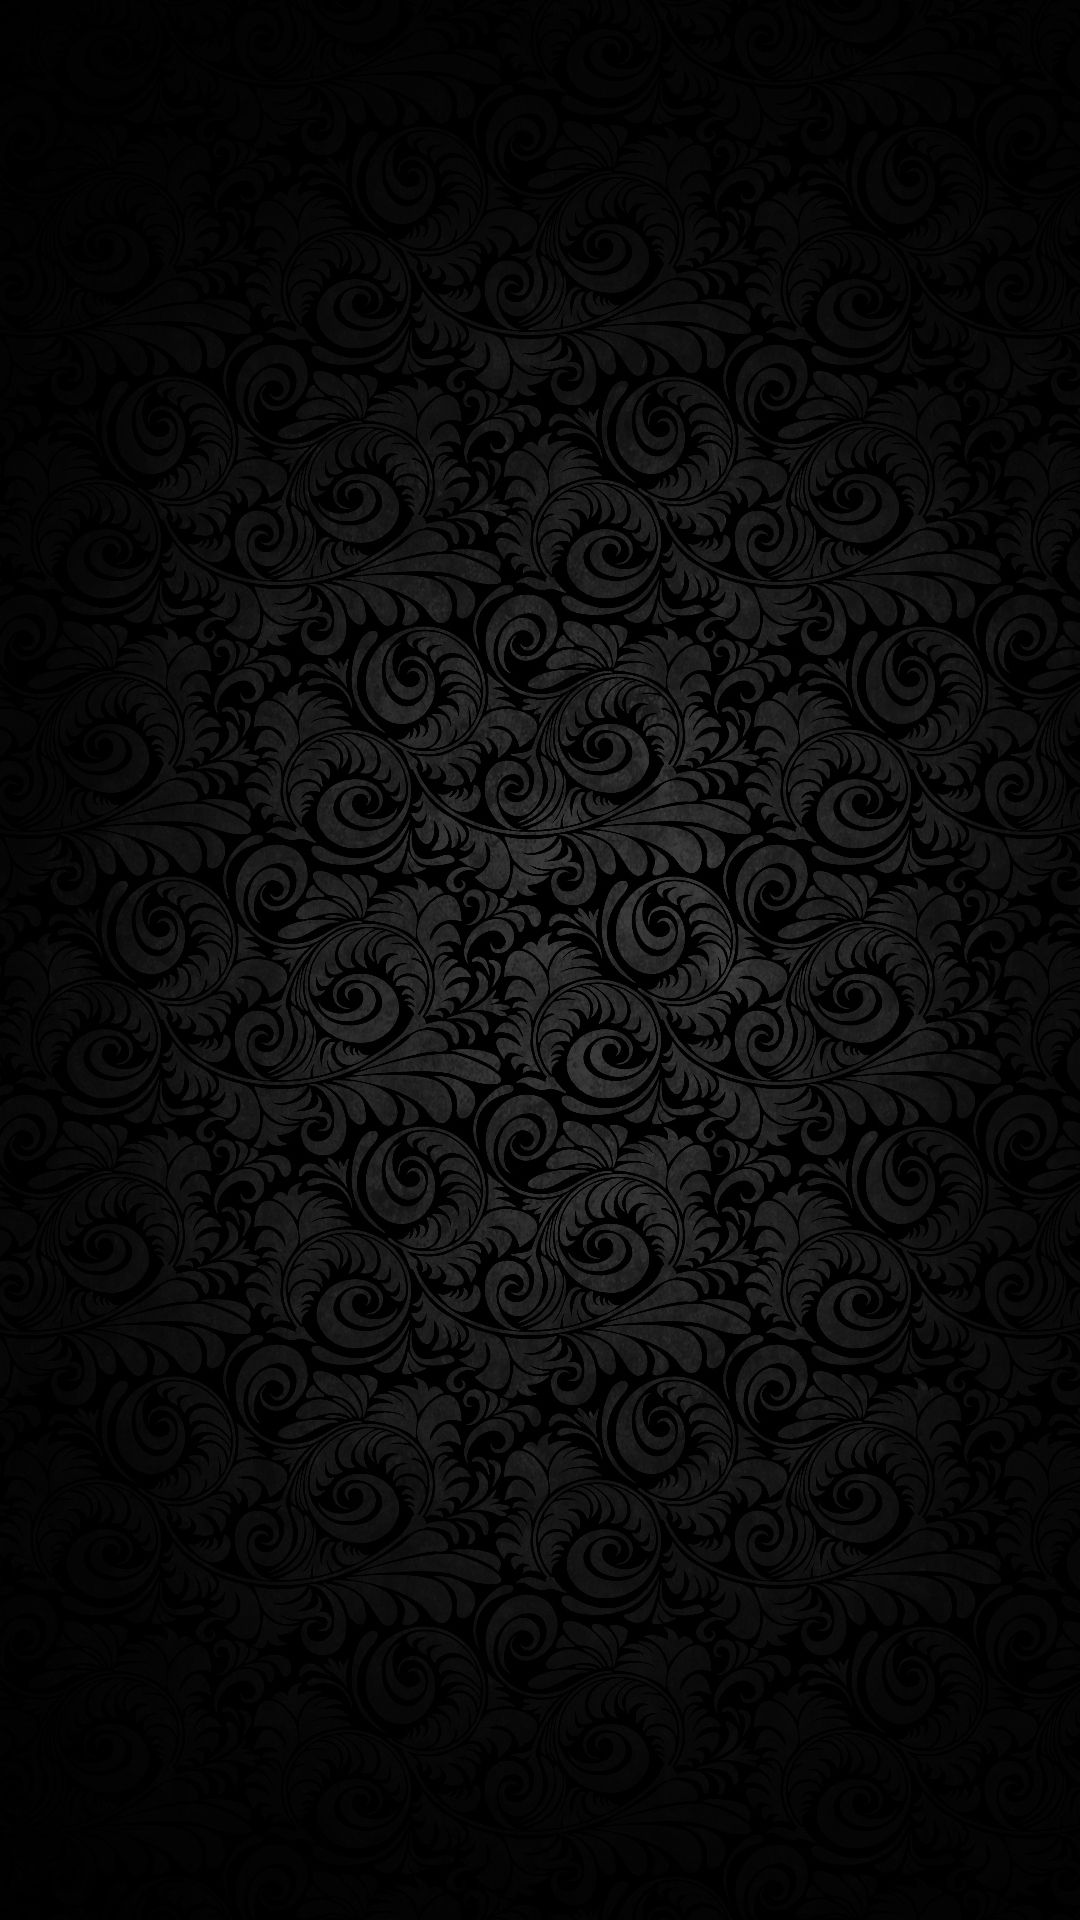 Wallpaper Wallpapers With Abstract Designs And Textures 3d Minimalistic Black Hd Wallpaper Black Phone Wallpaper Hd Wallpaper Android